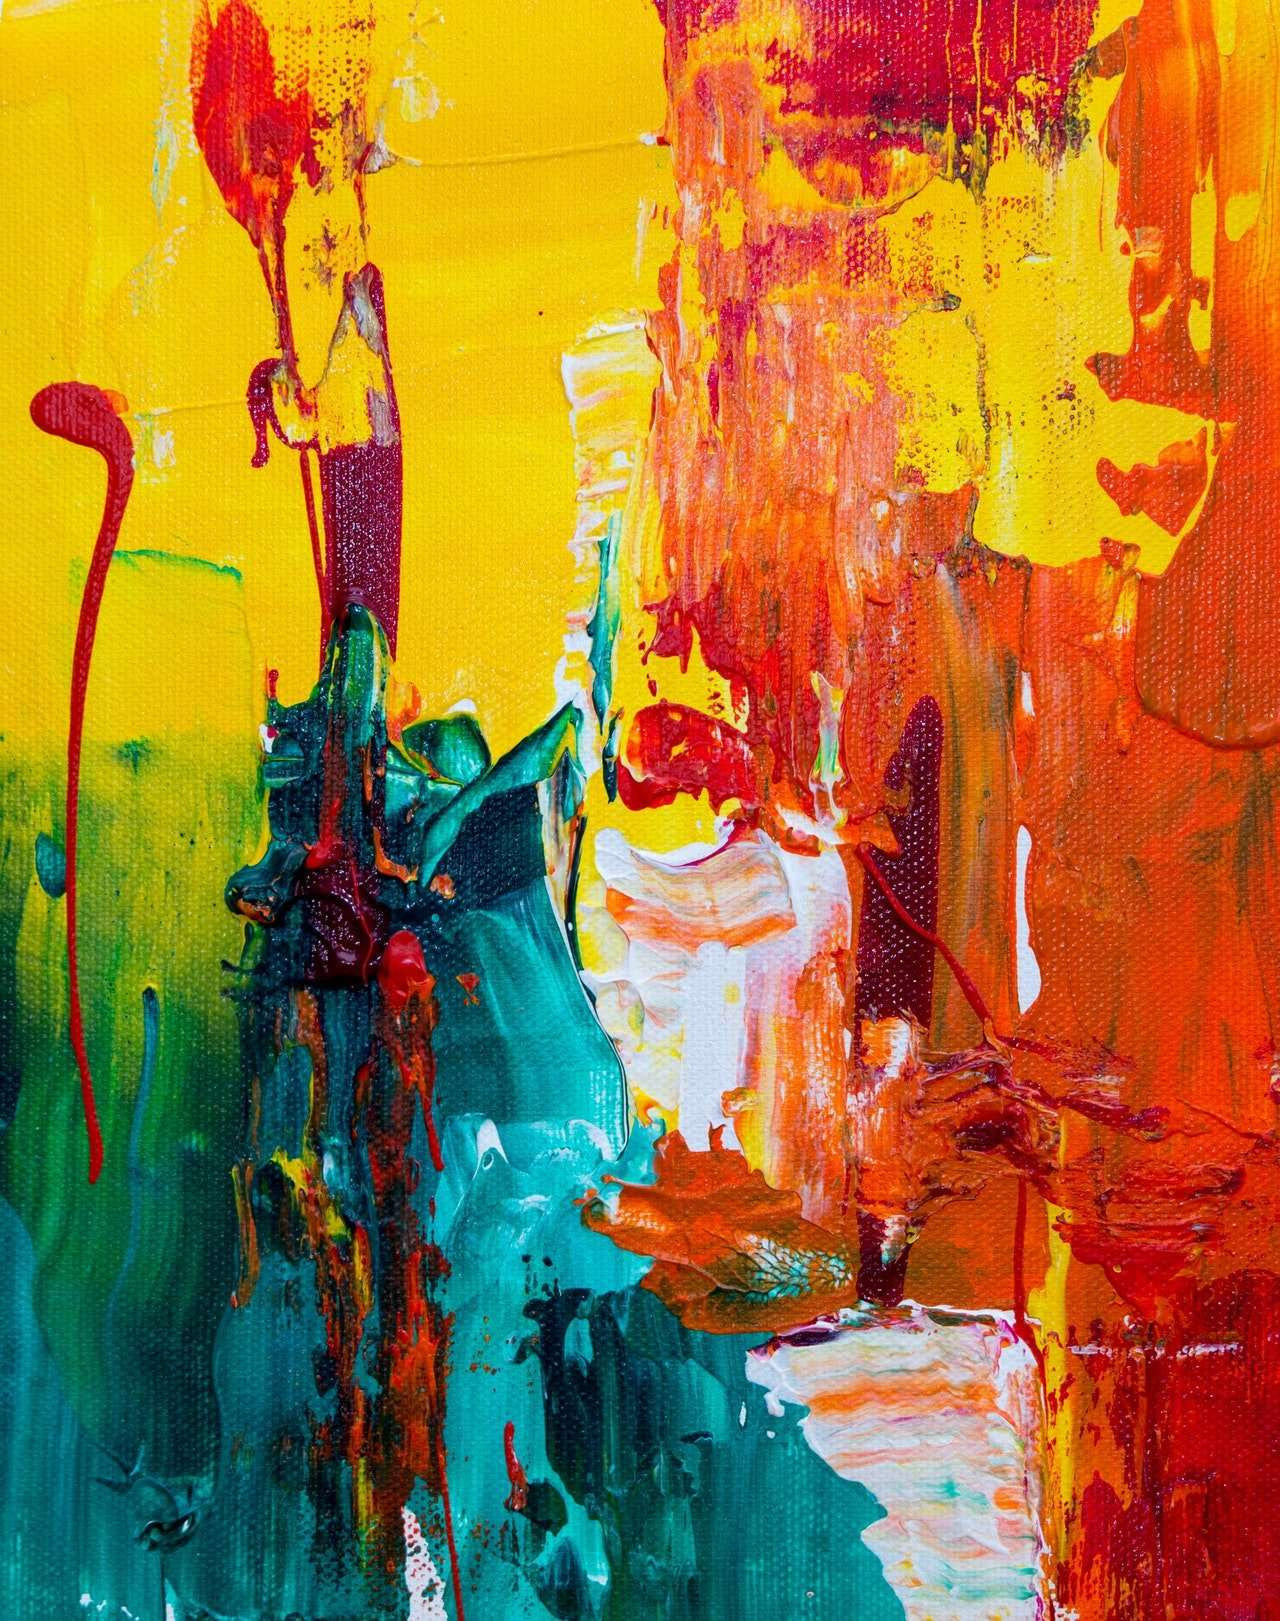 Artist Splashes Paint to Express Emotion & Personality